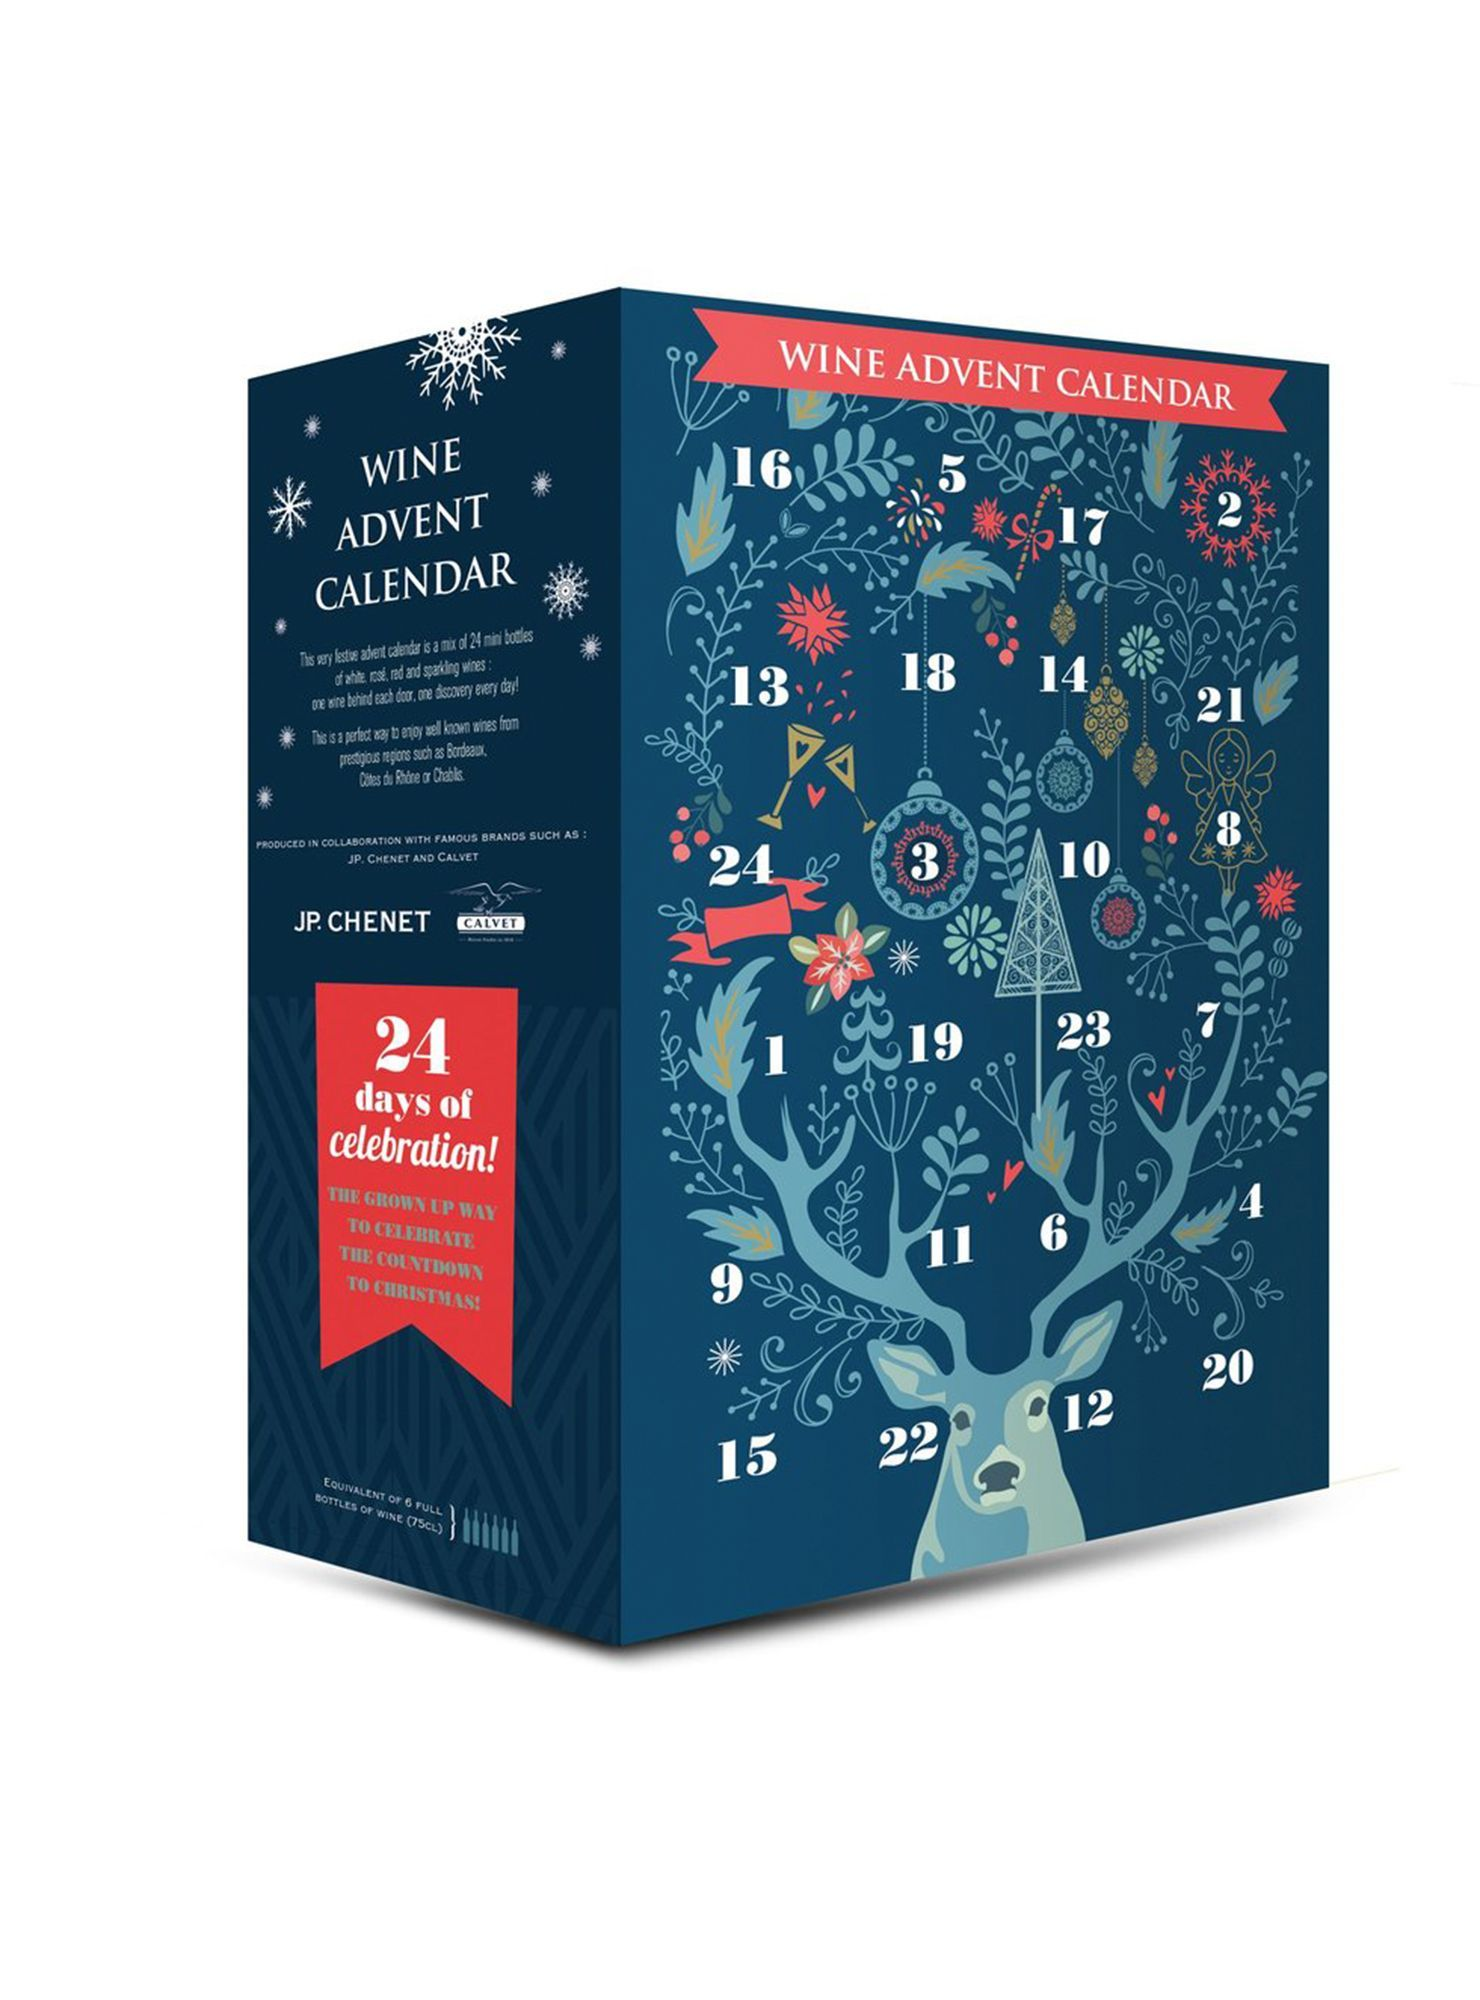 The Worlds First Wine Advent Calendar Is Here The Worlds First Wine Advent Calendar Is Here new pics